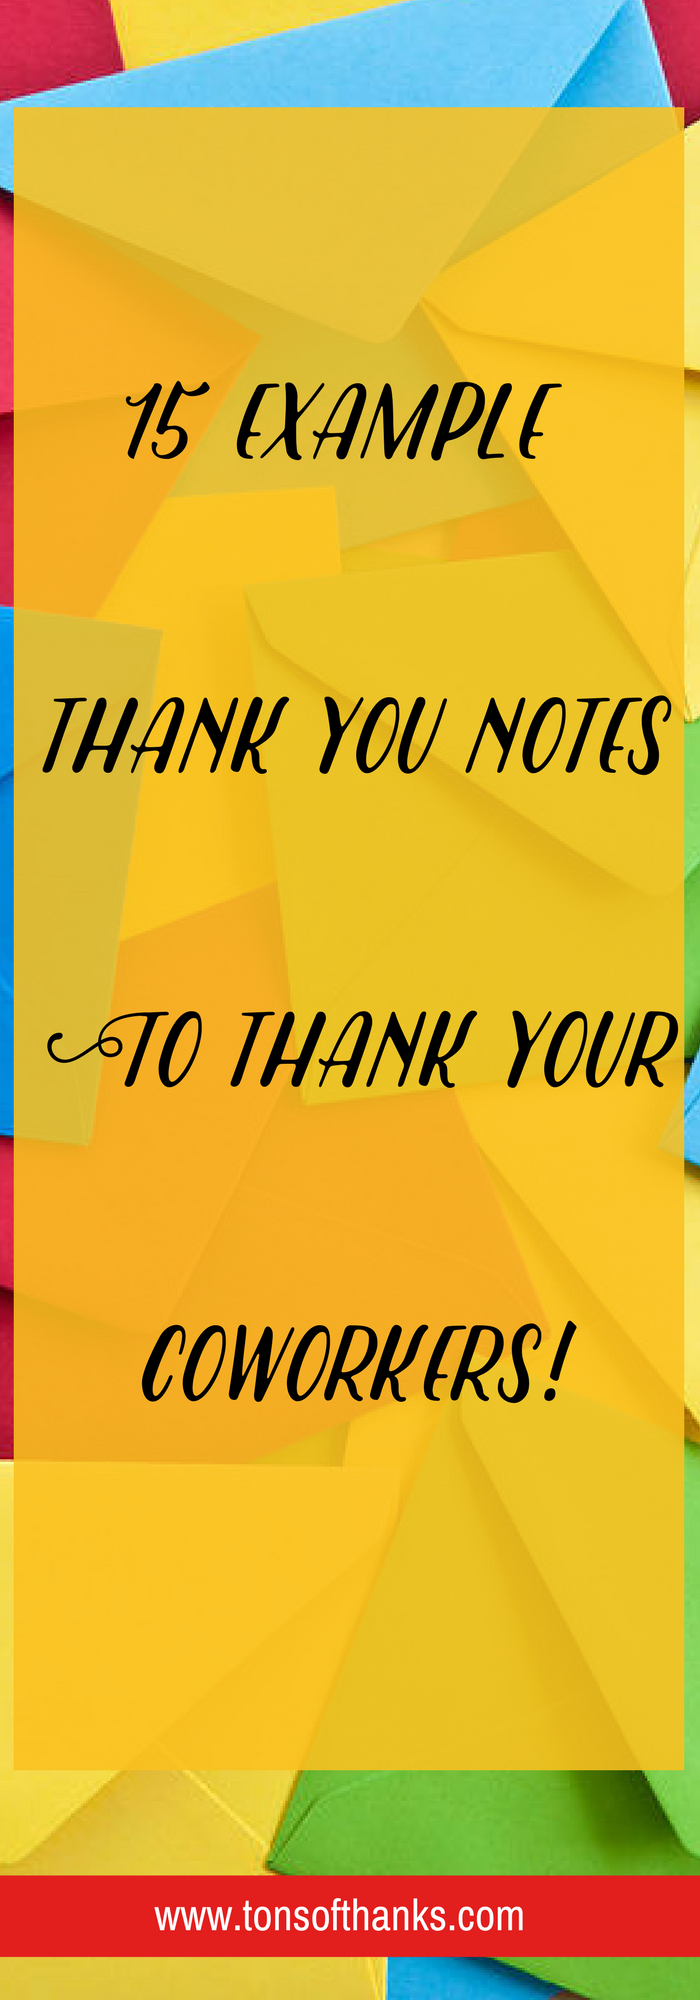 Example Thank You Notes To Coworkers  Note Craft And Cards